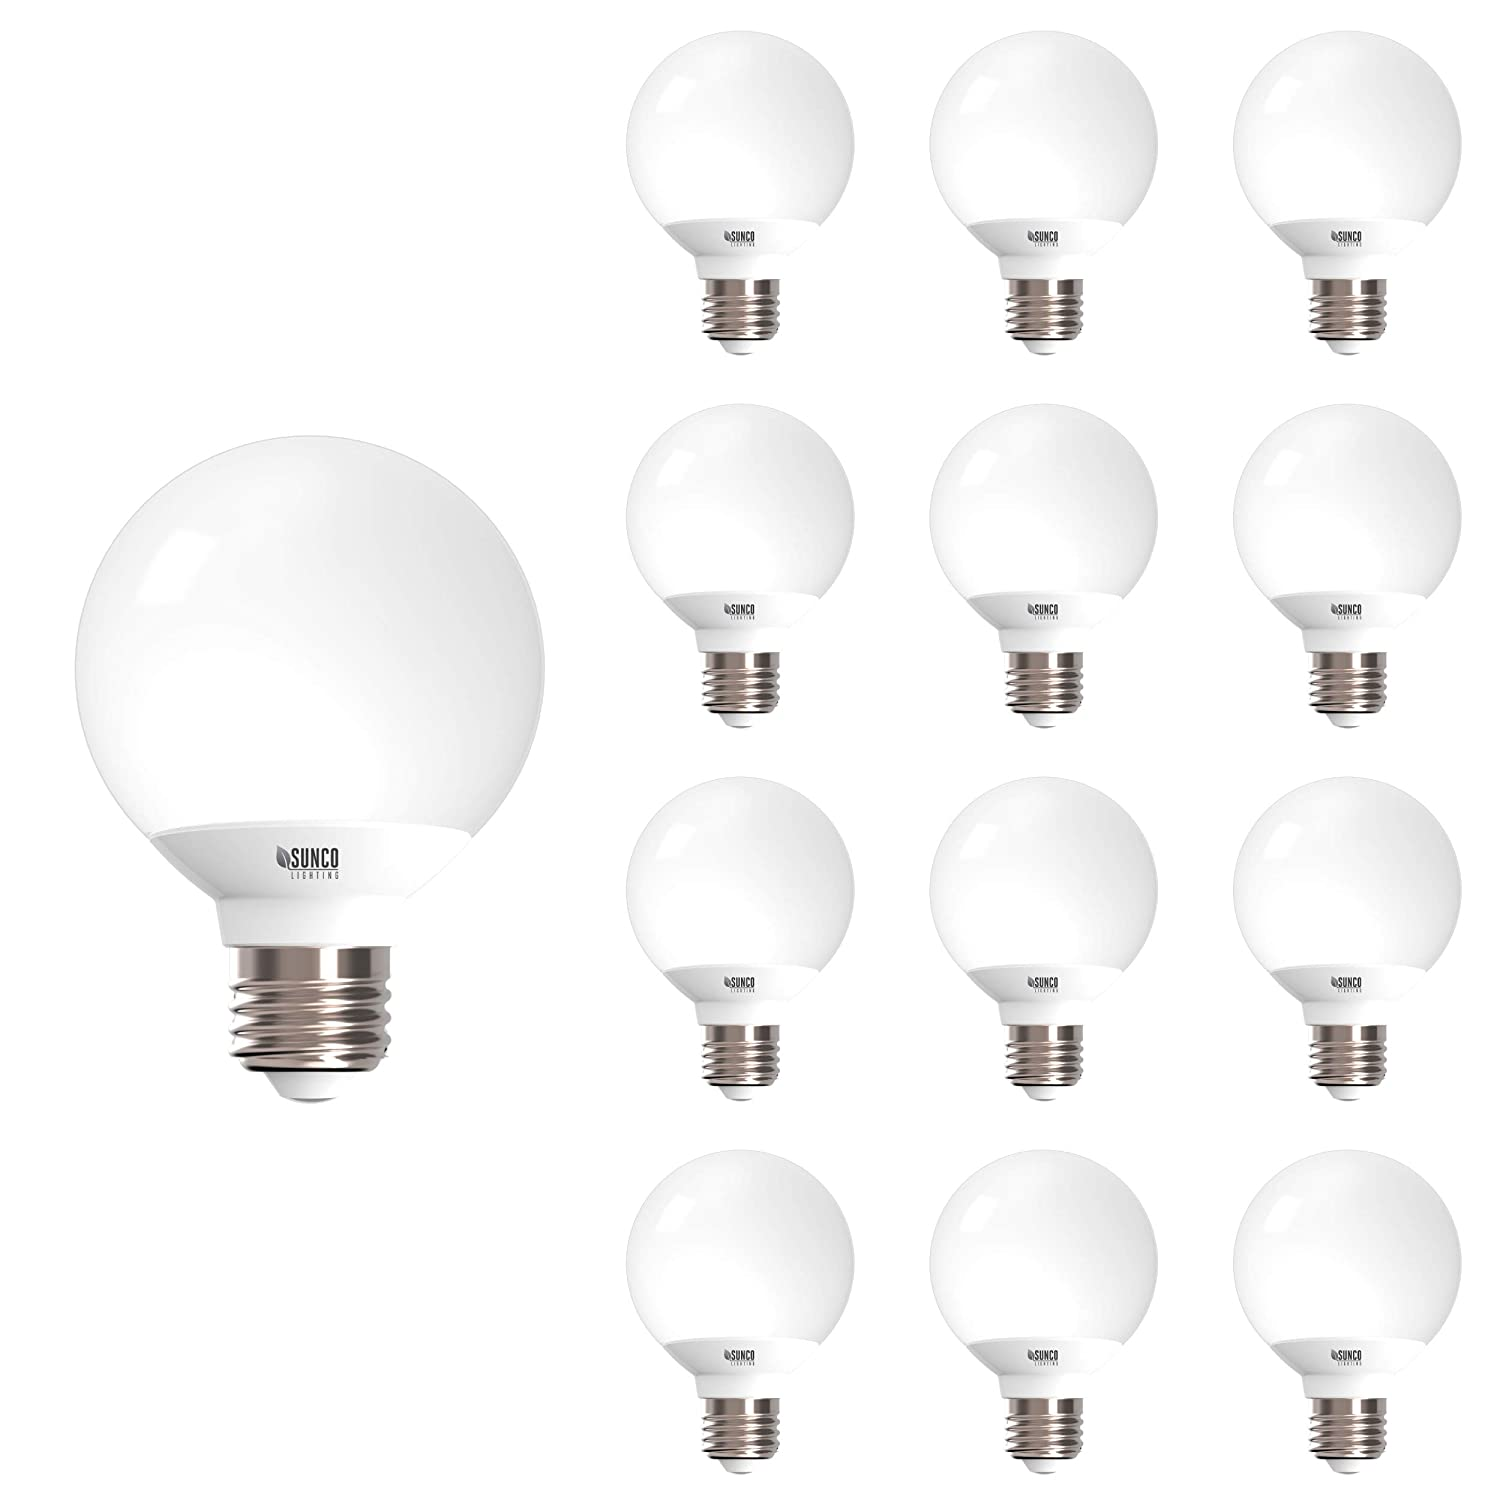 Sunco Lighting 12 Pack G25 LED Globe, 6W=40W, Dimmable, 3000K Warm White, E26 Base, Omnidirection Bulb for Vanities, Lamps, Light Fixtures - UL & Energy Star